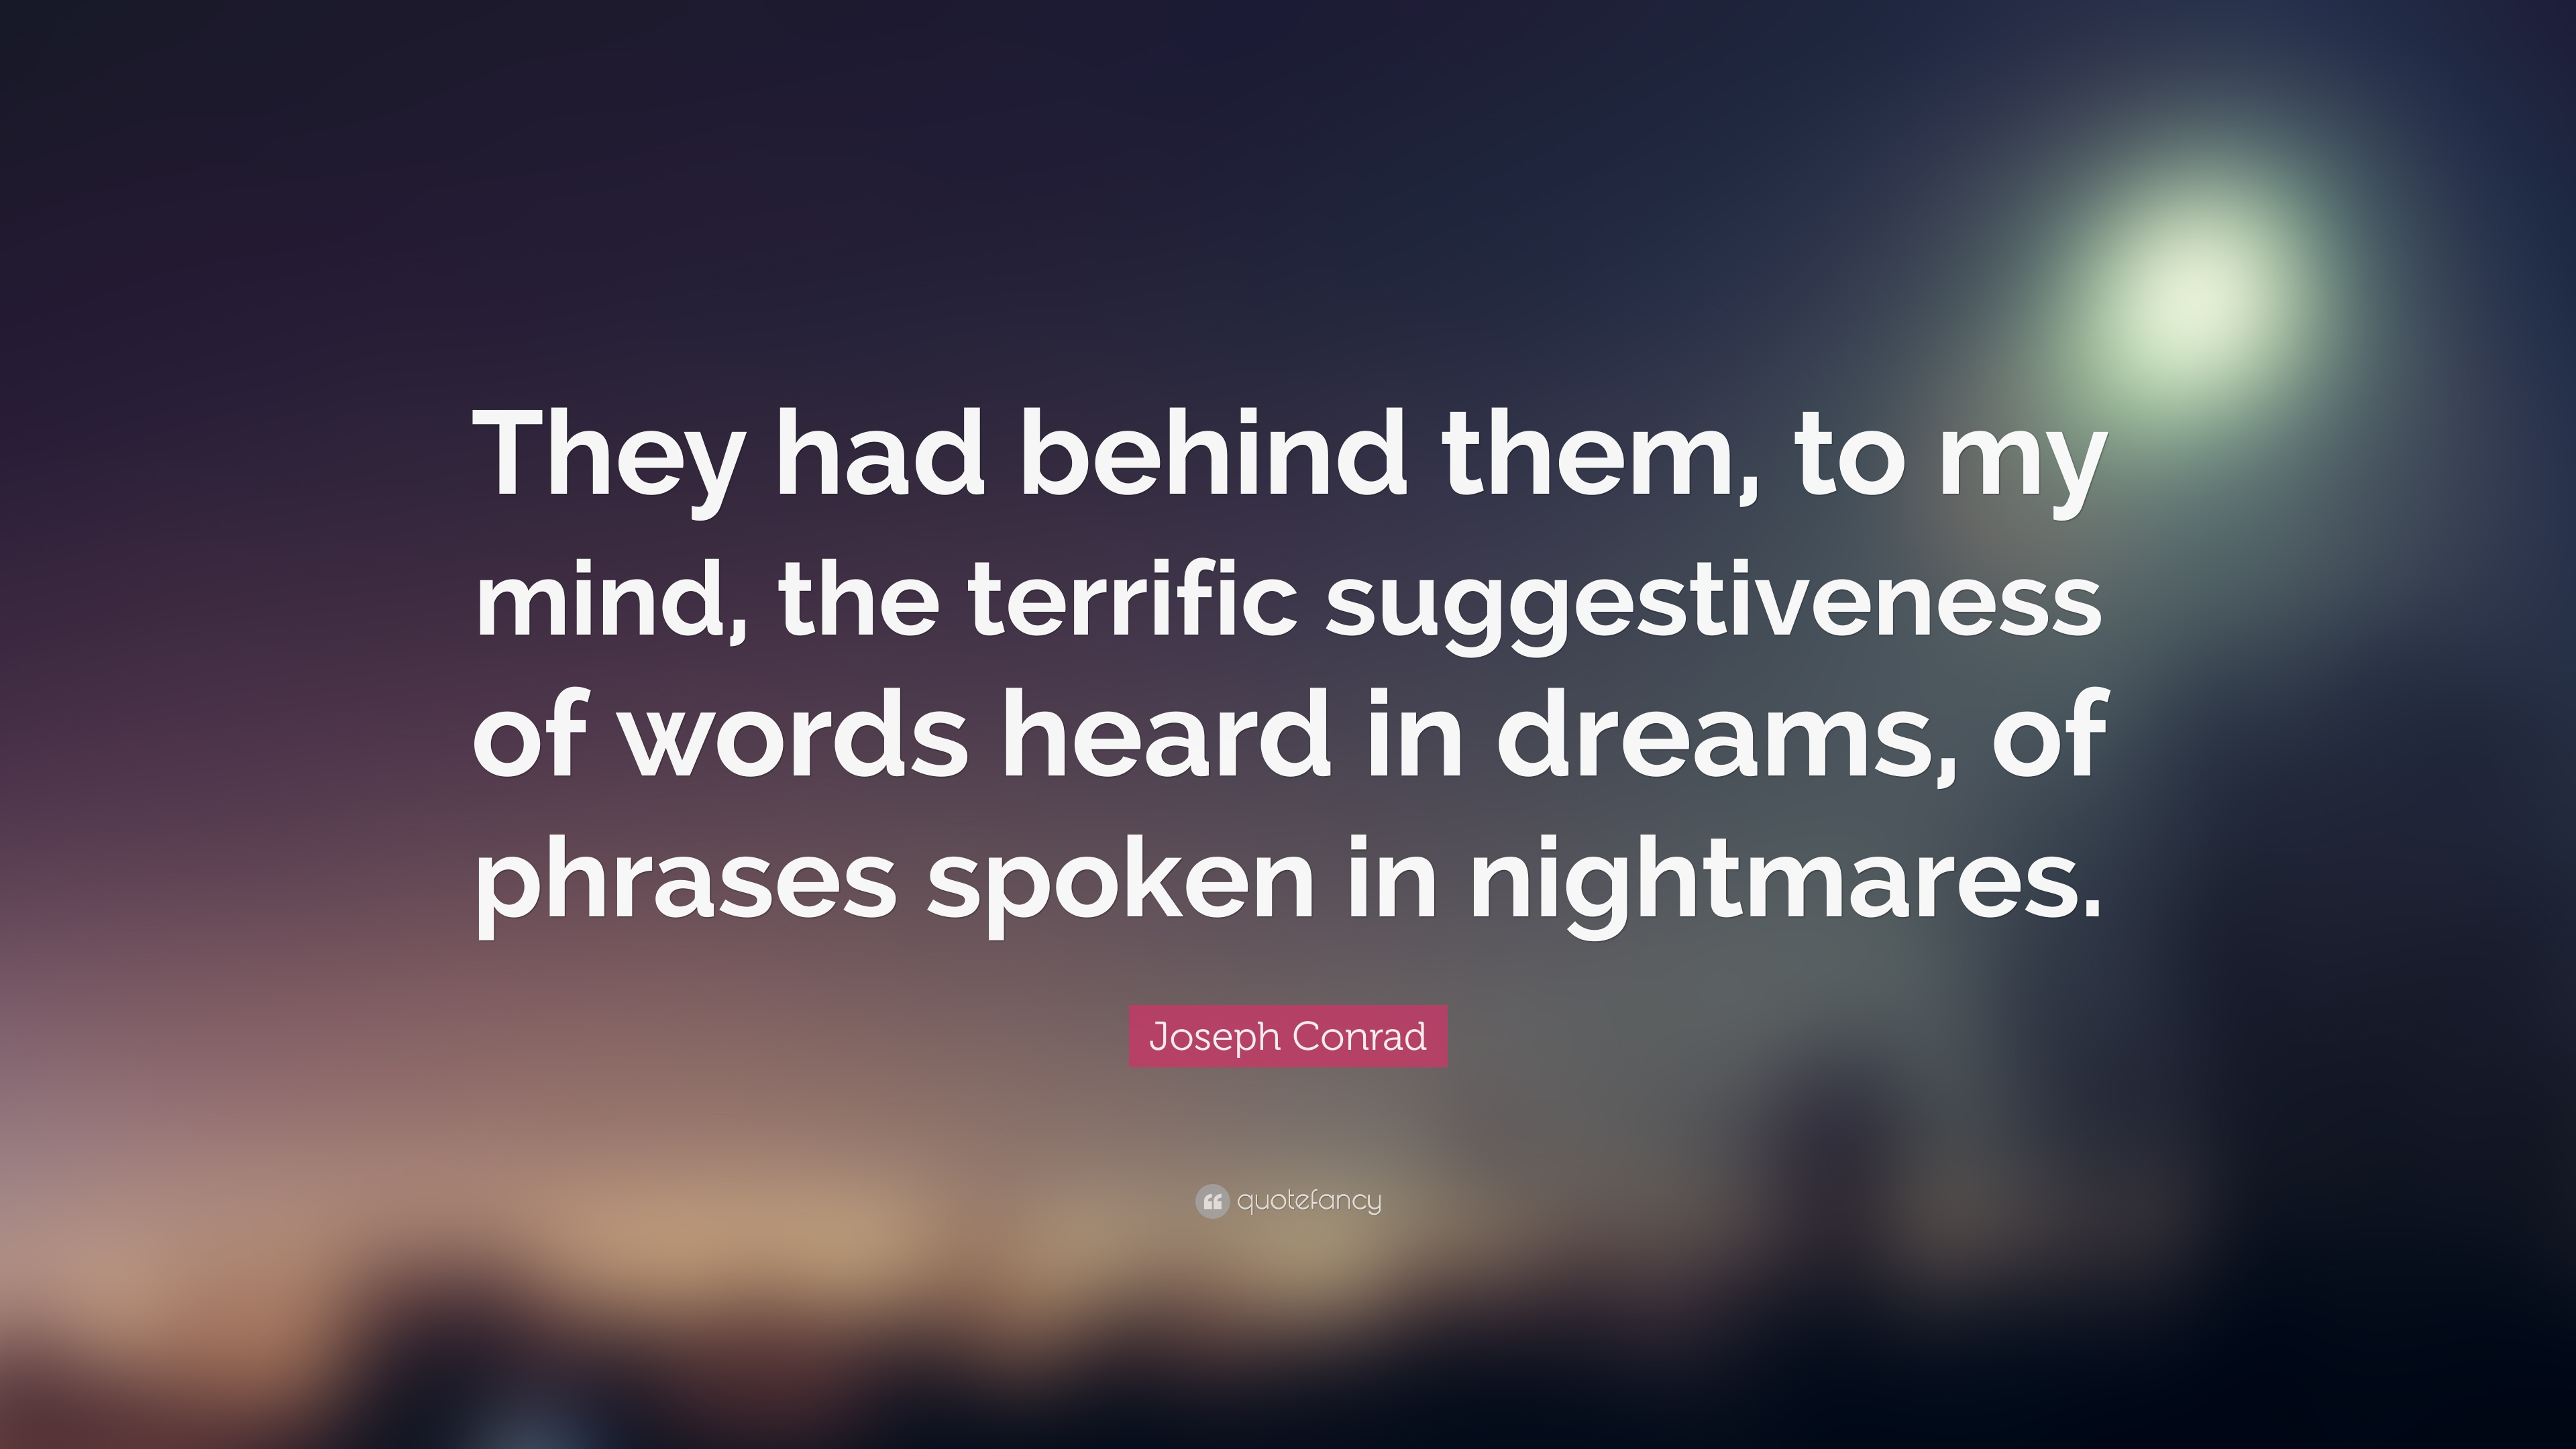 joseph conrad quote they had behind them to my mind the terrific